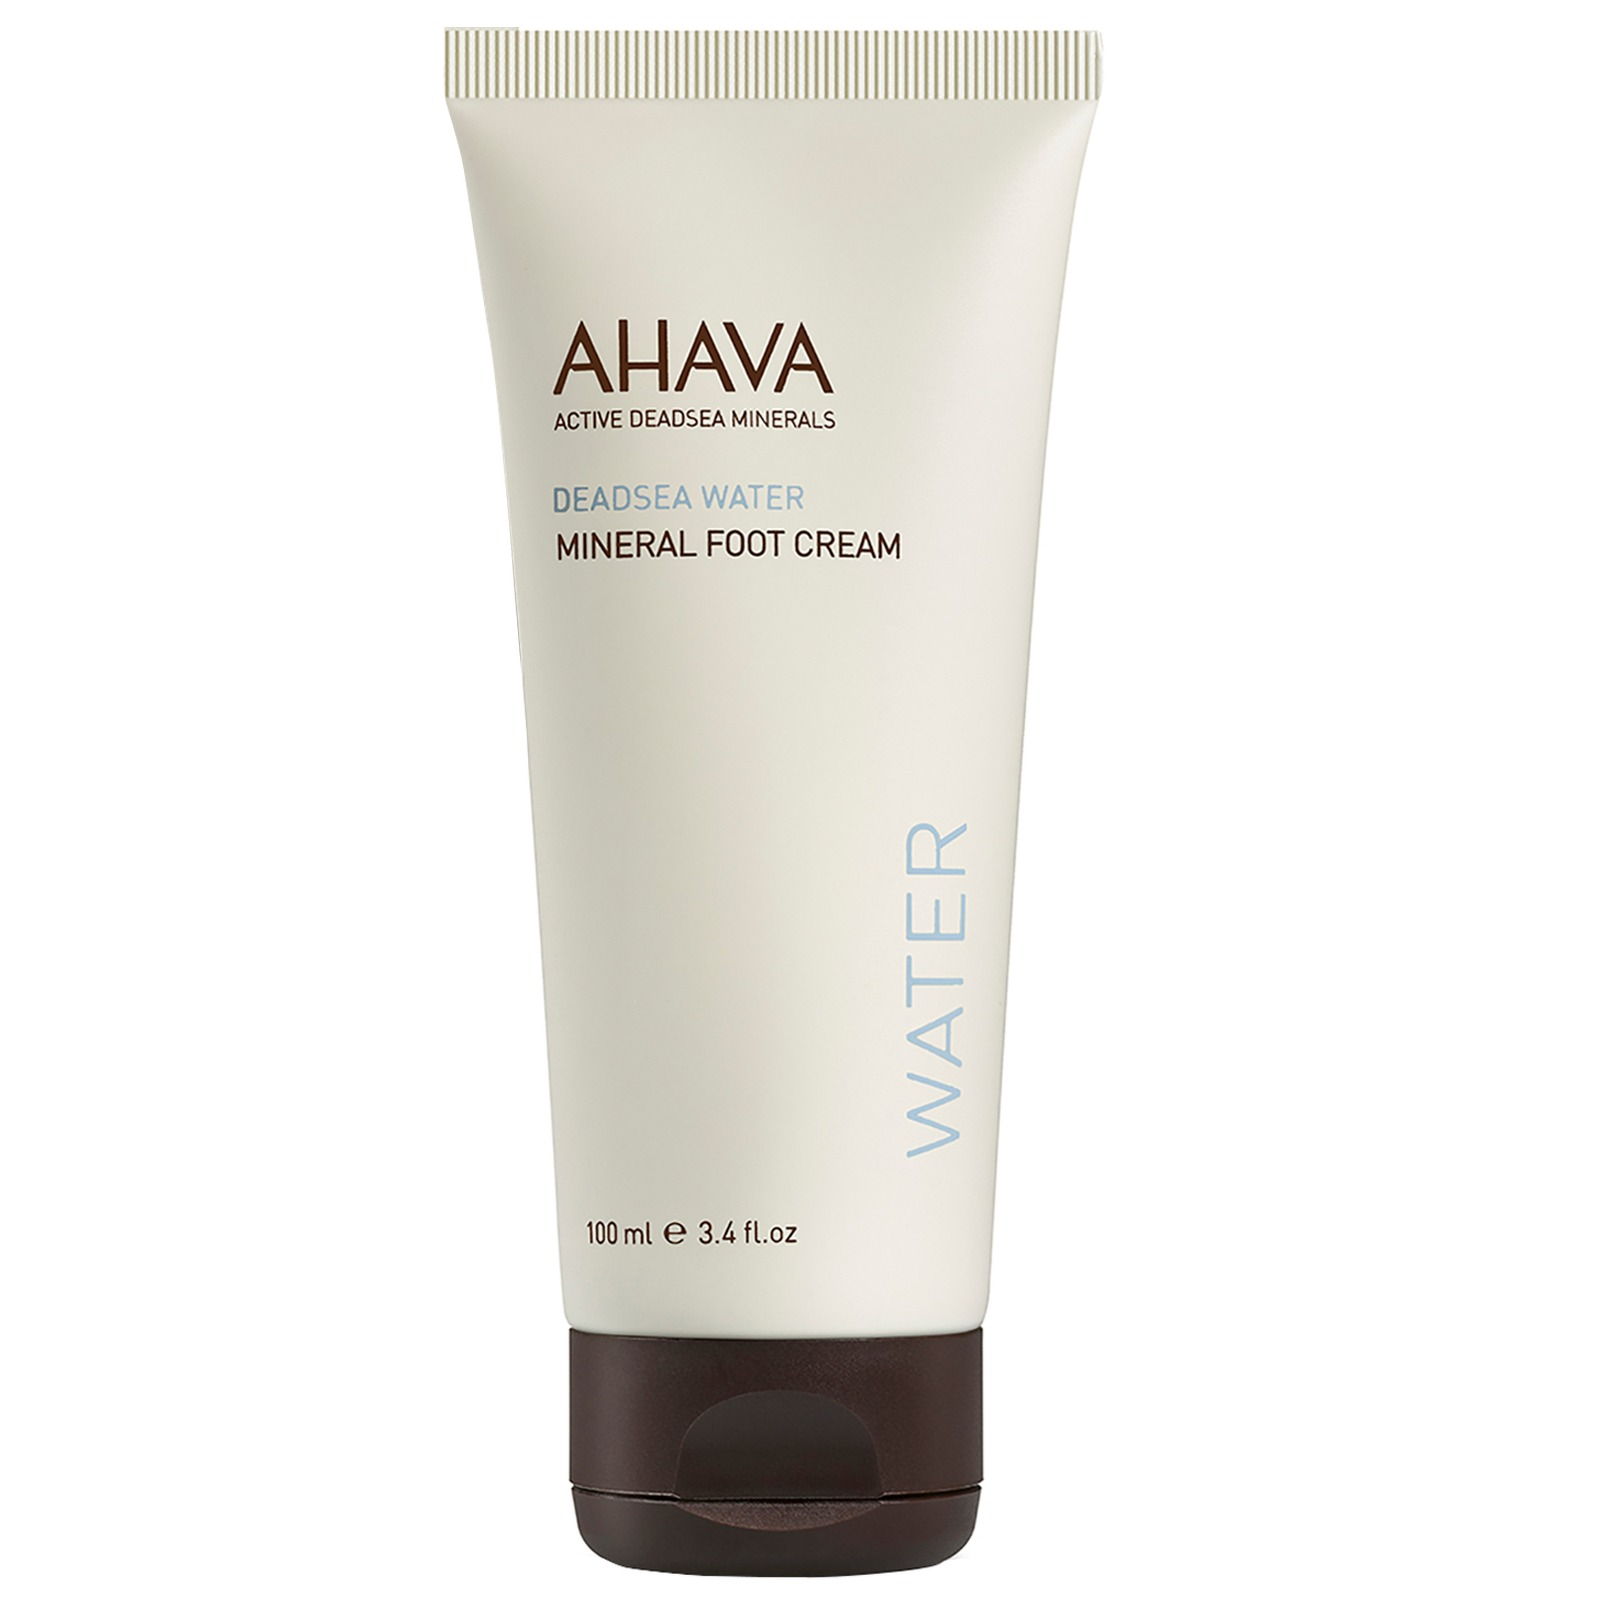 Ahava Water Hydrate Deadsea Water Mineral Foot Cream 100ml